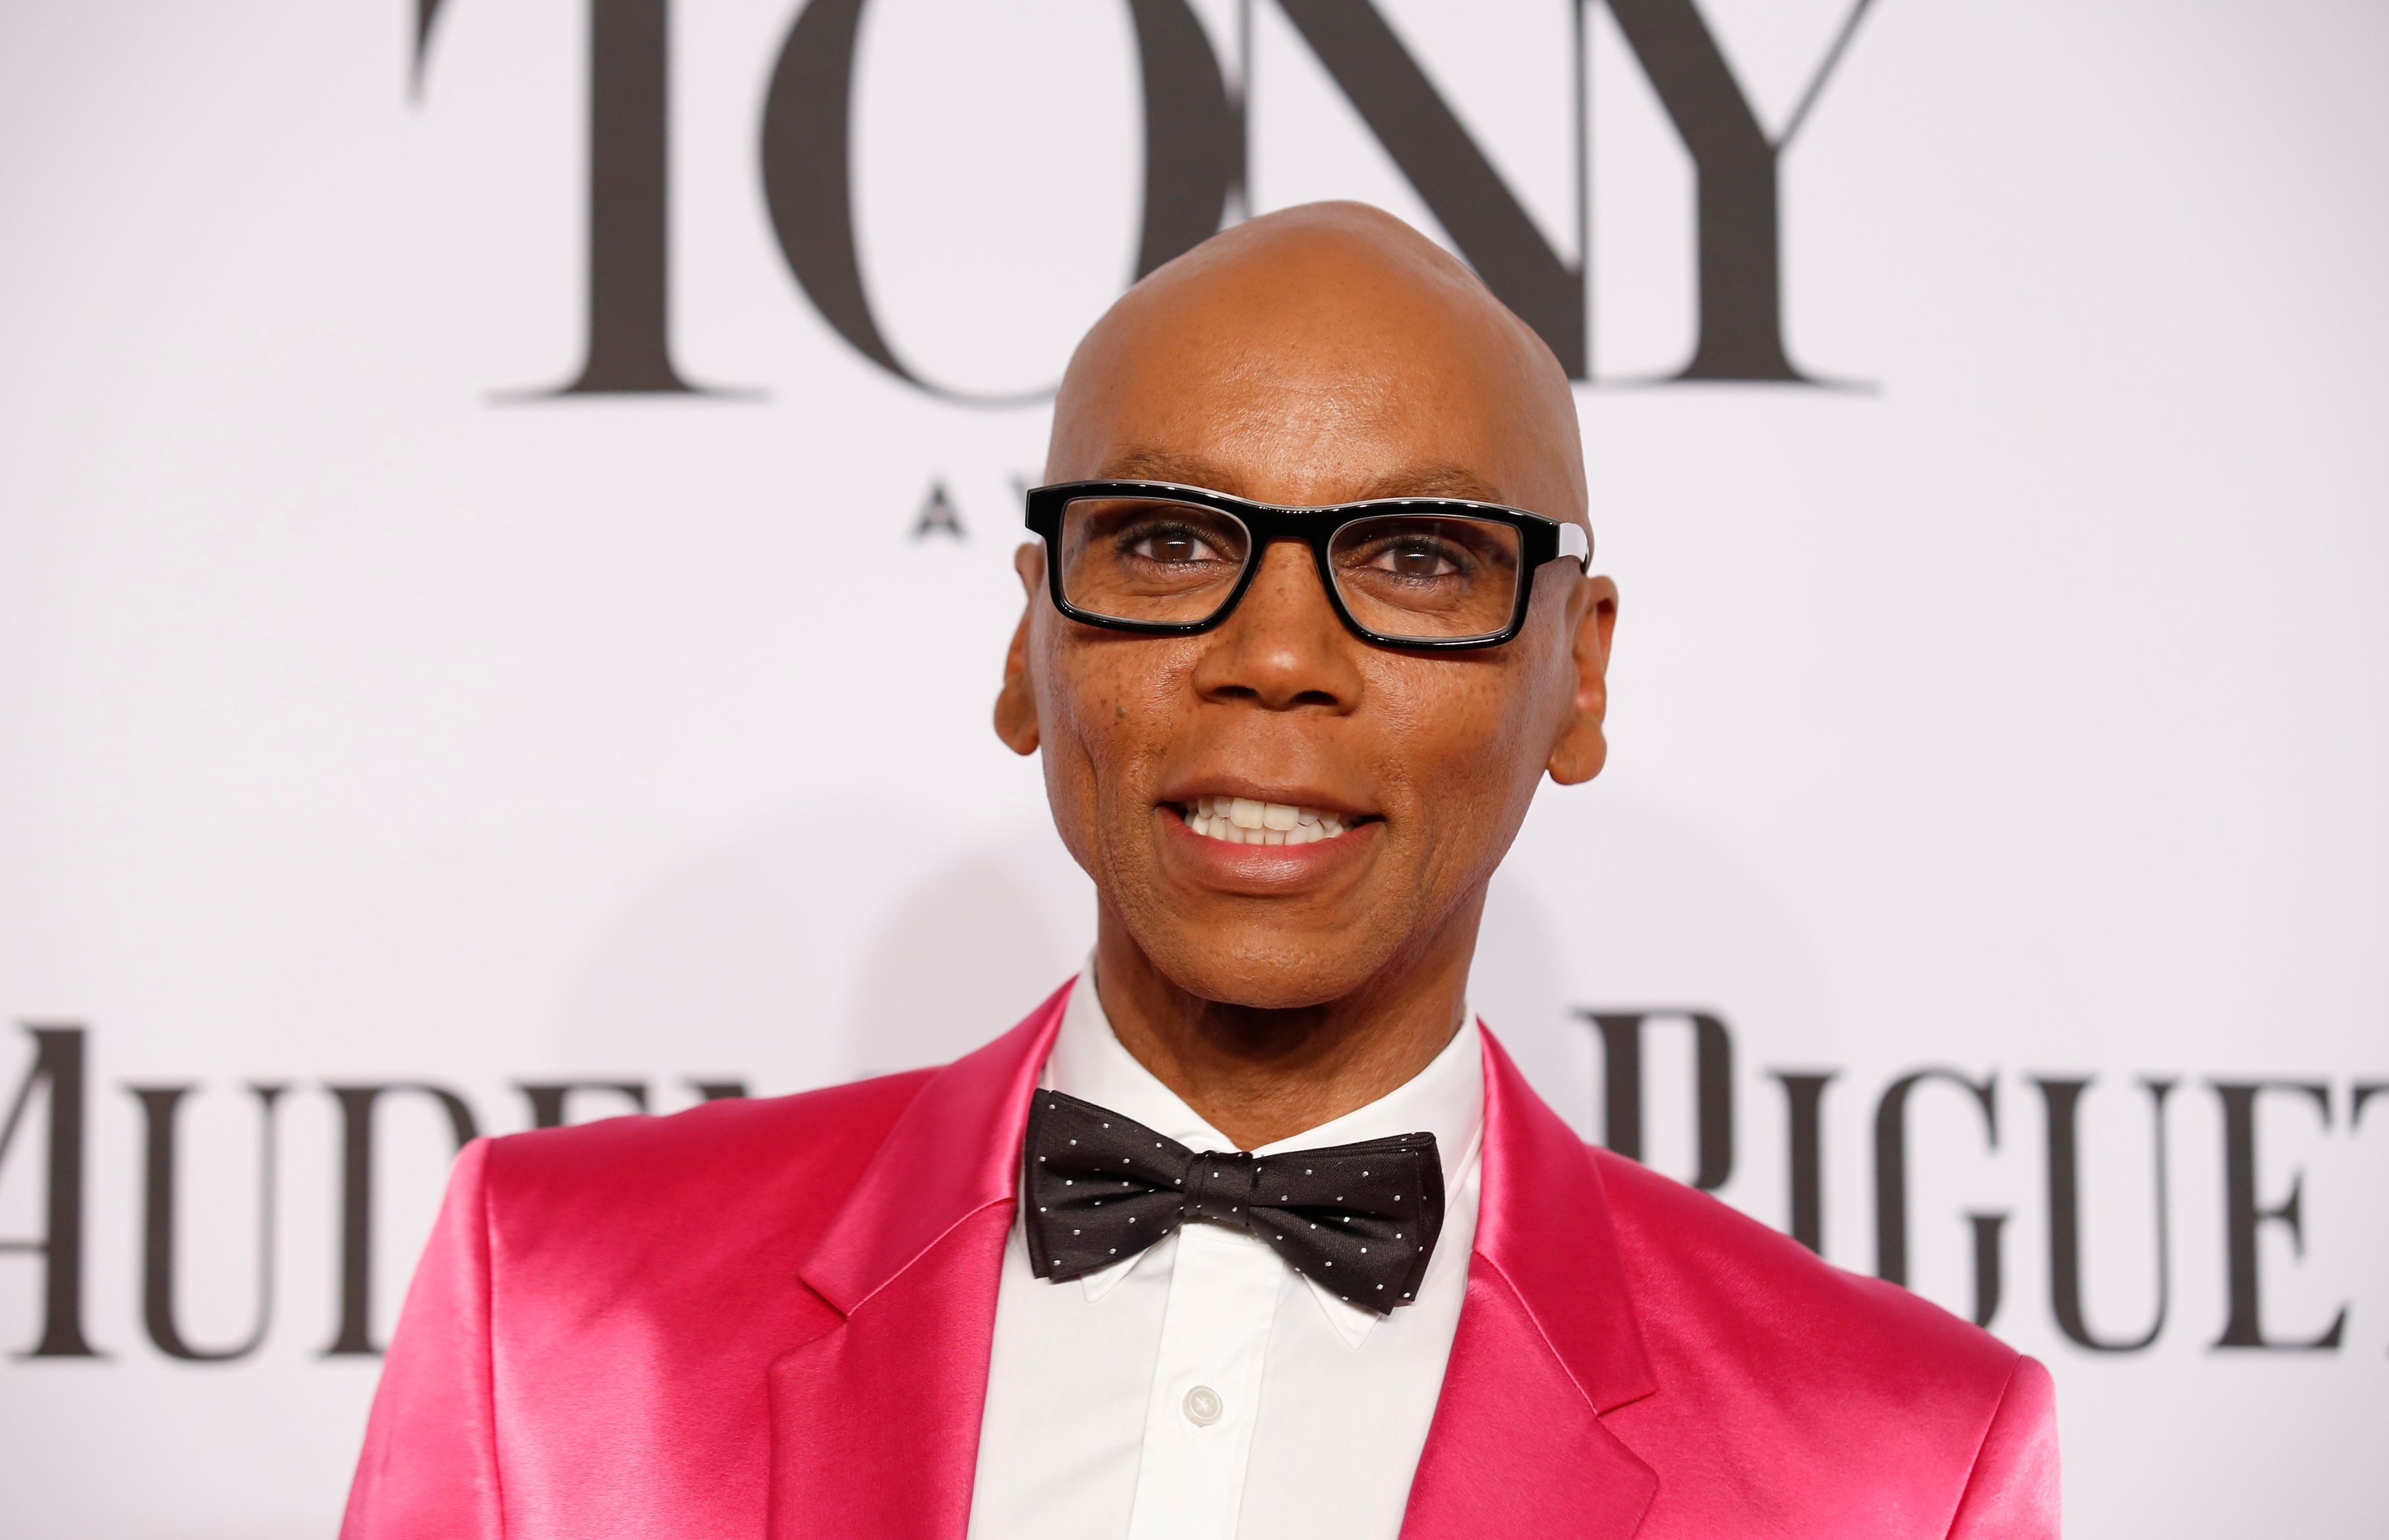 RuPaul Just Revealed He's